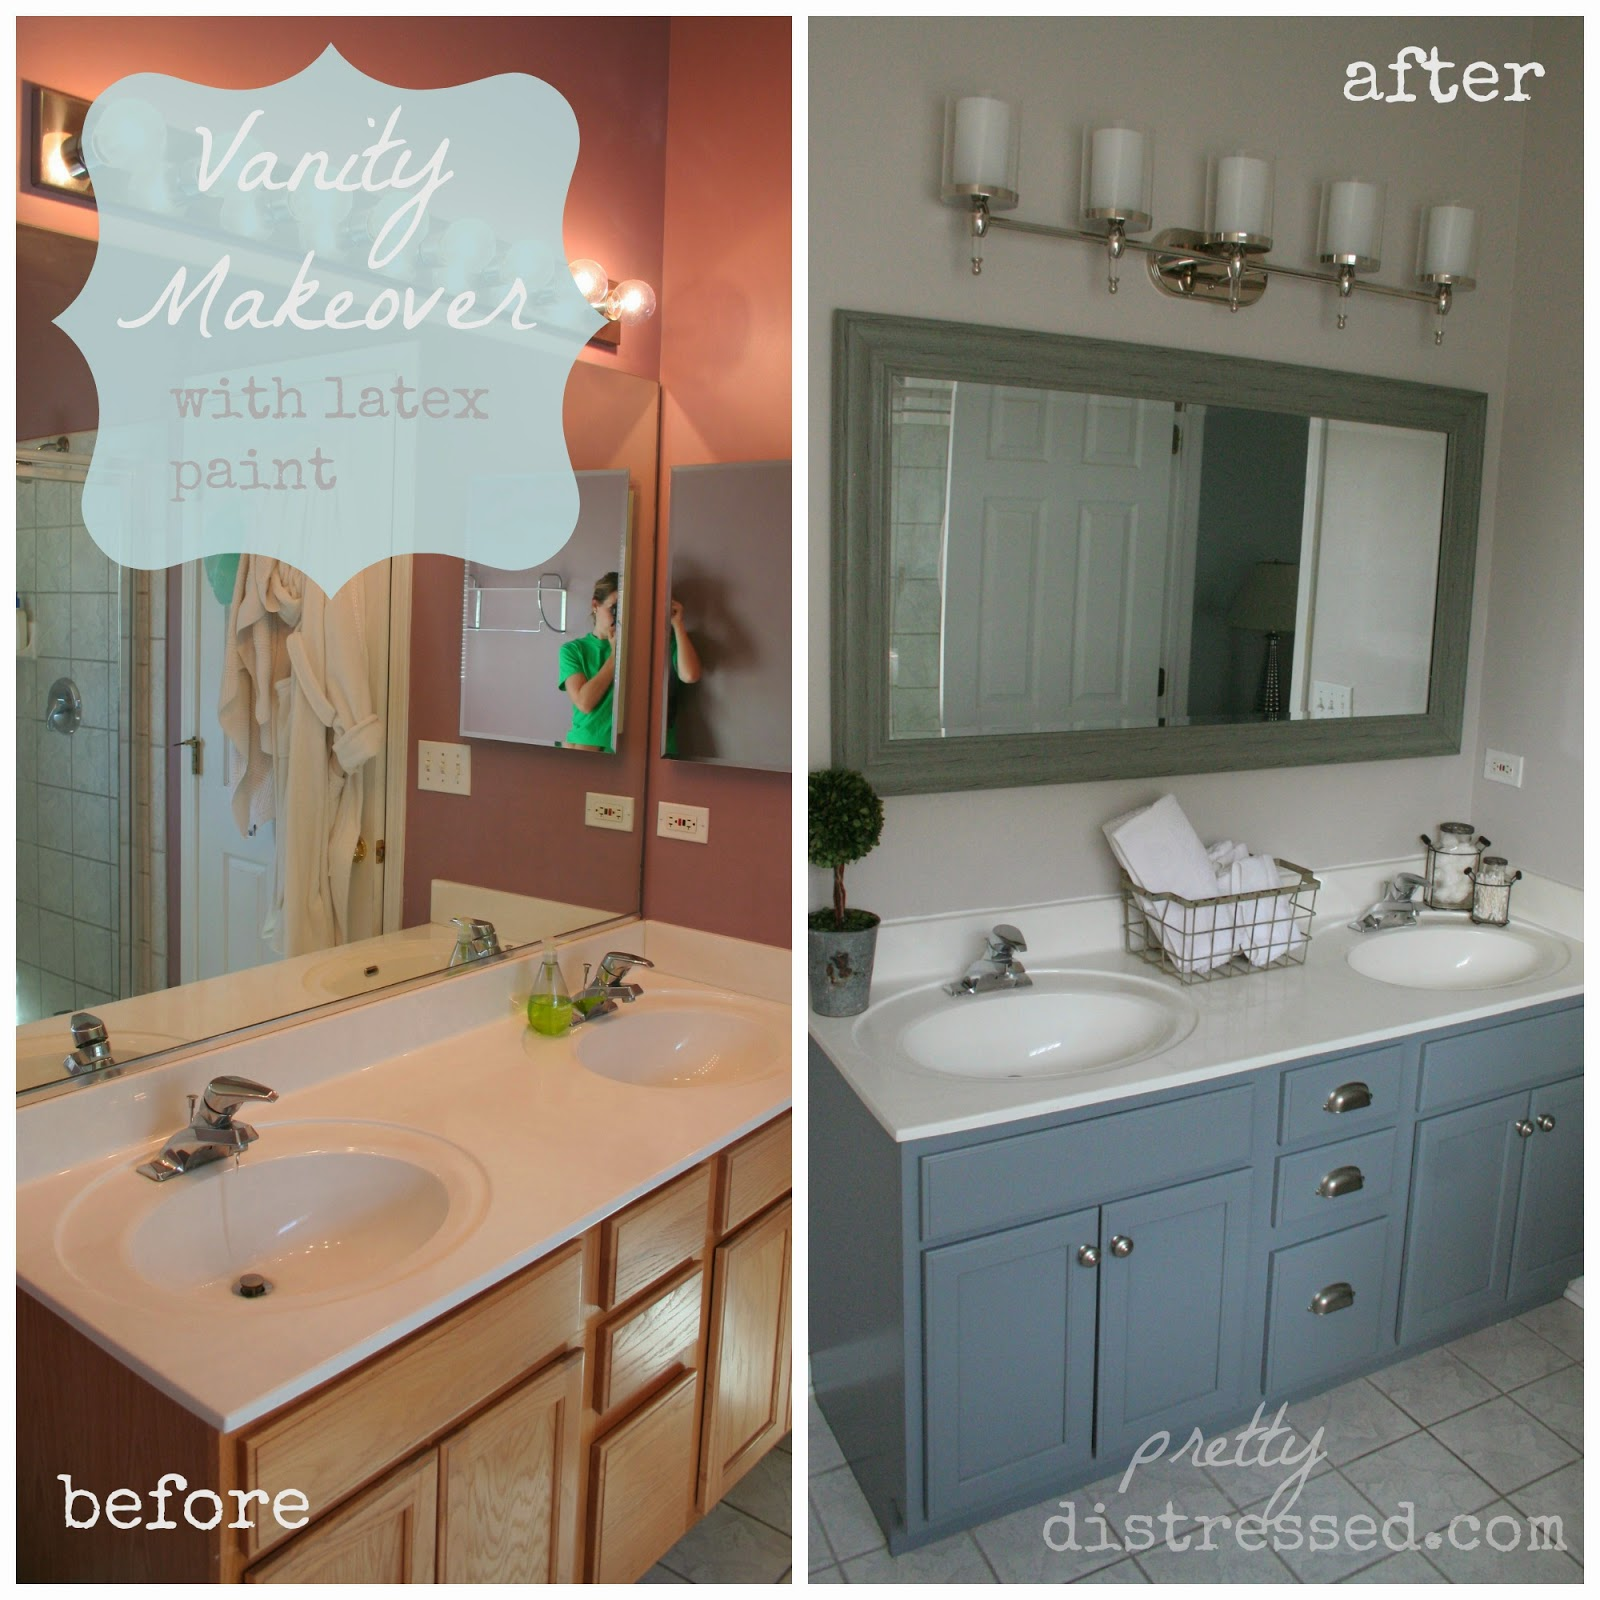 Vintage Bathroom Vanity Makeover with Latex Paint